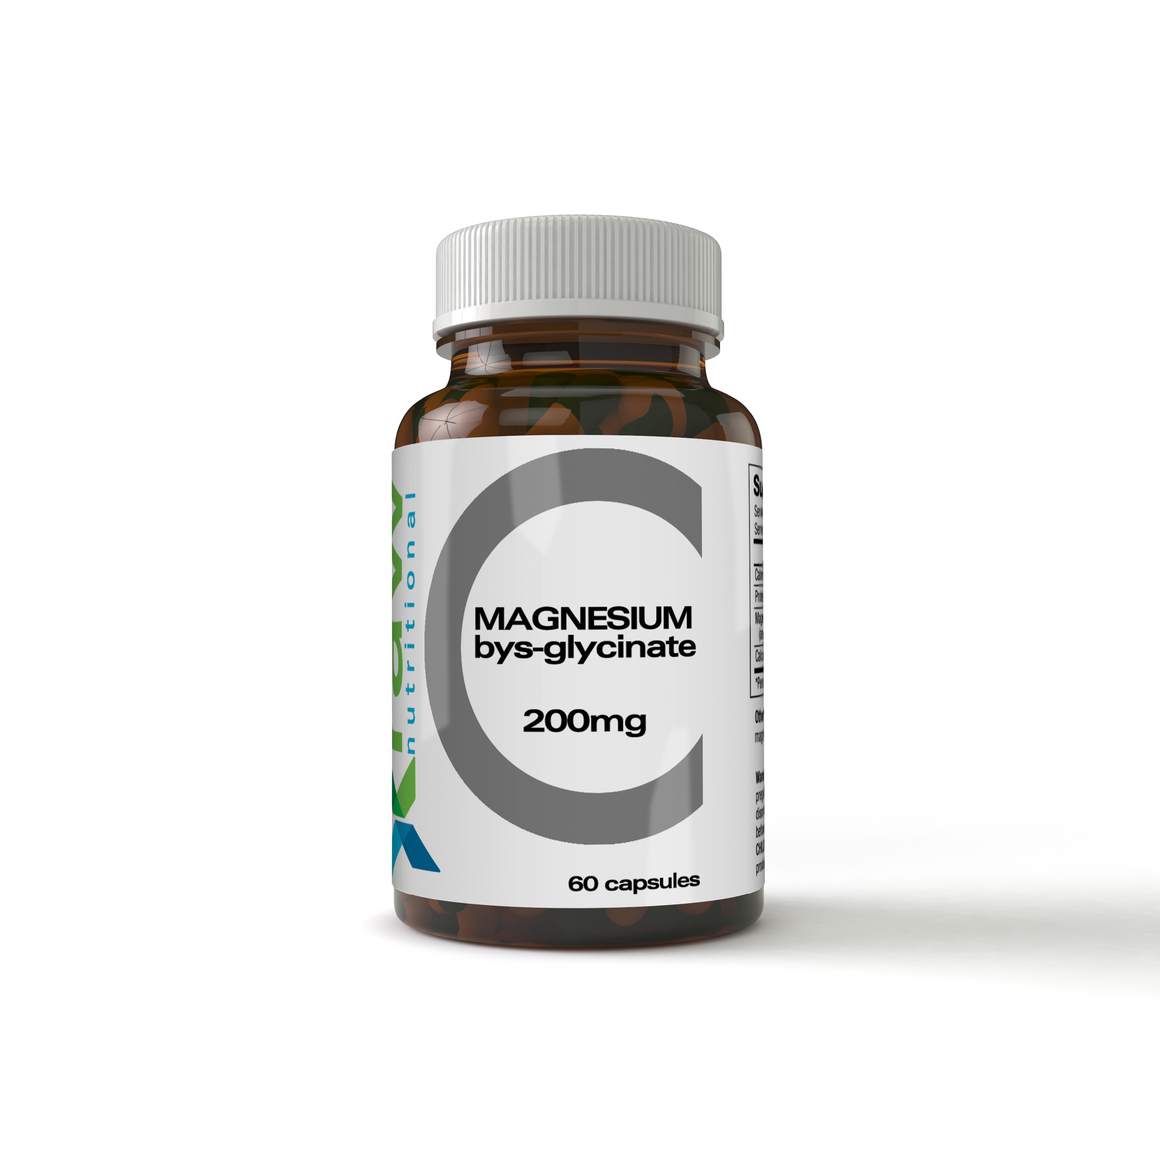 Magnesium bis-glycinate product in a amber glass bottle contains 60 capsules